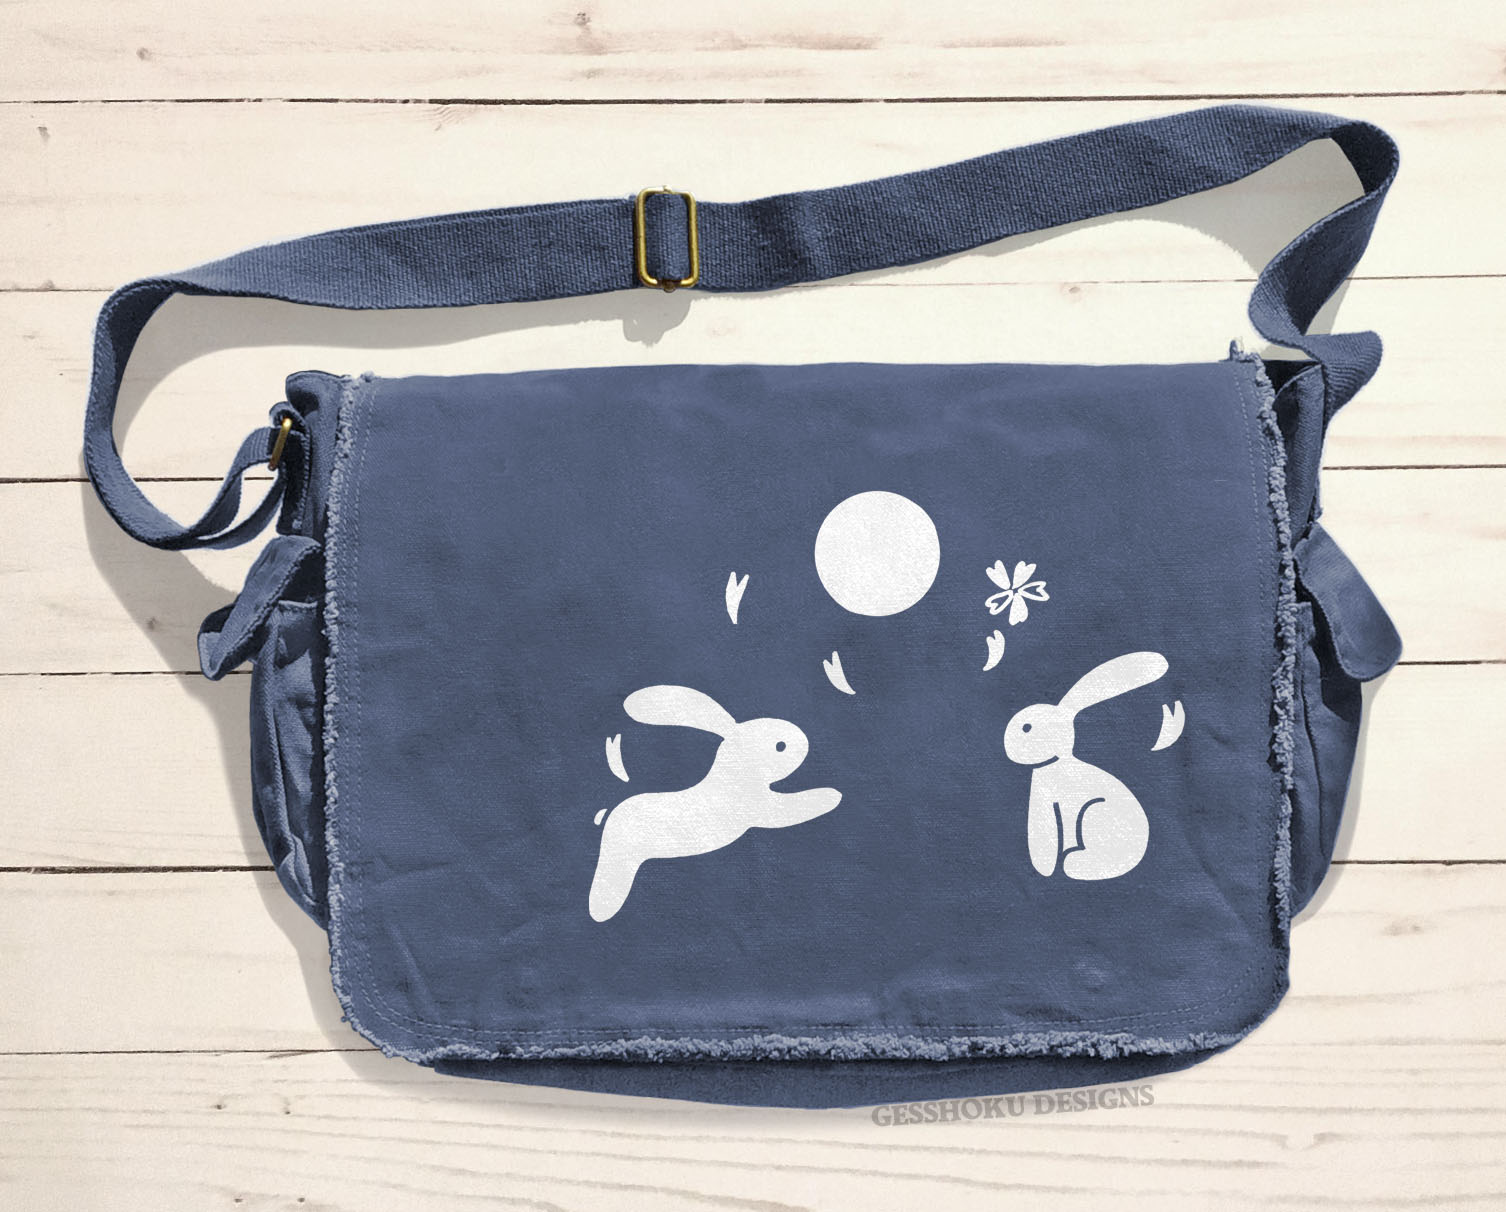 Asian Moon Bunnies Messenger Bag - Denim Blue